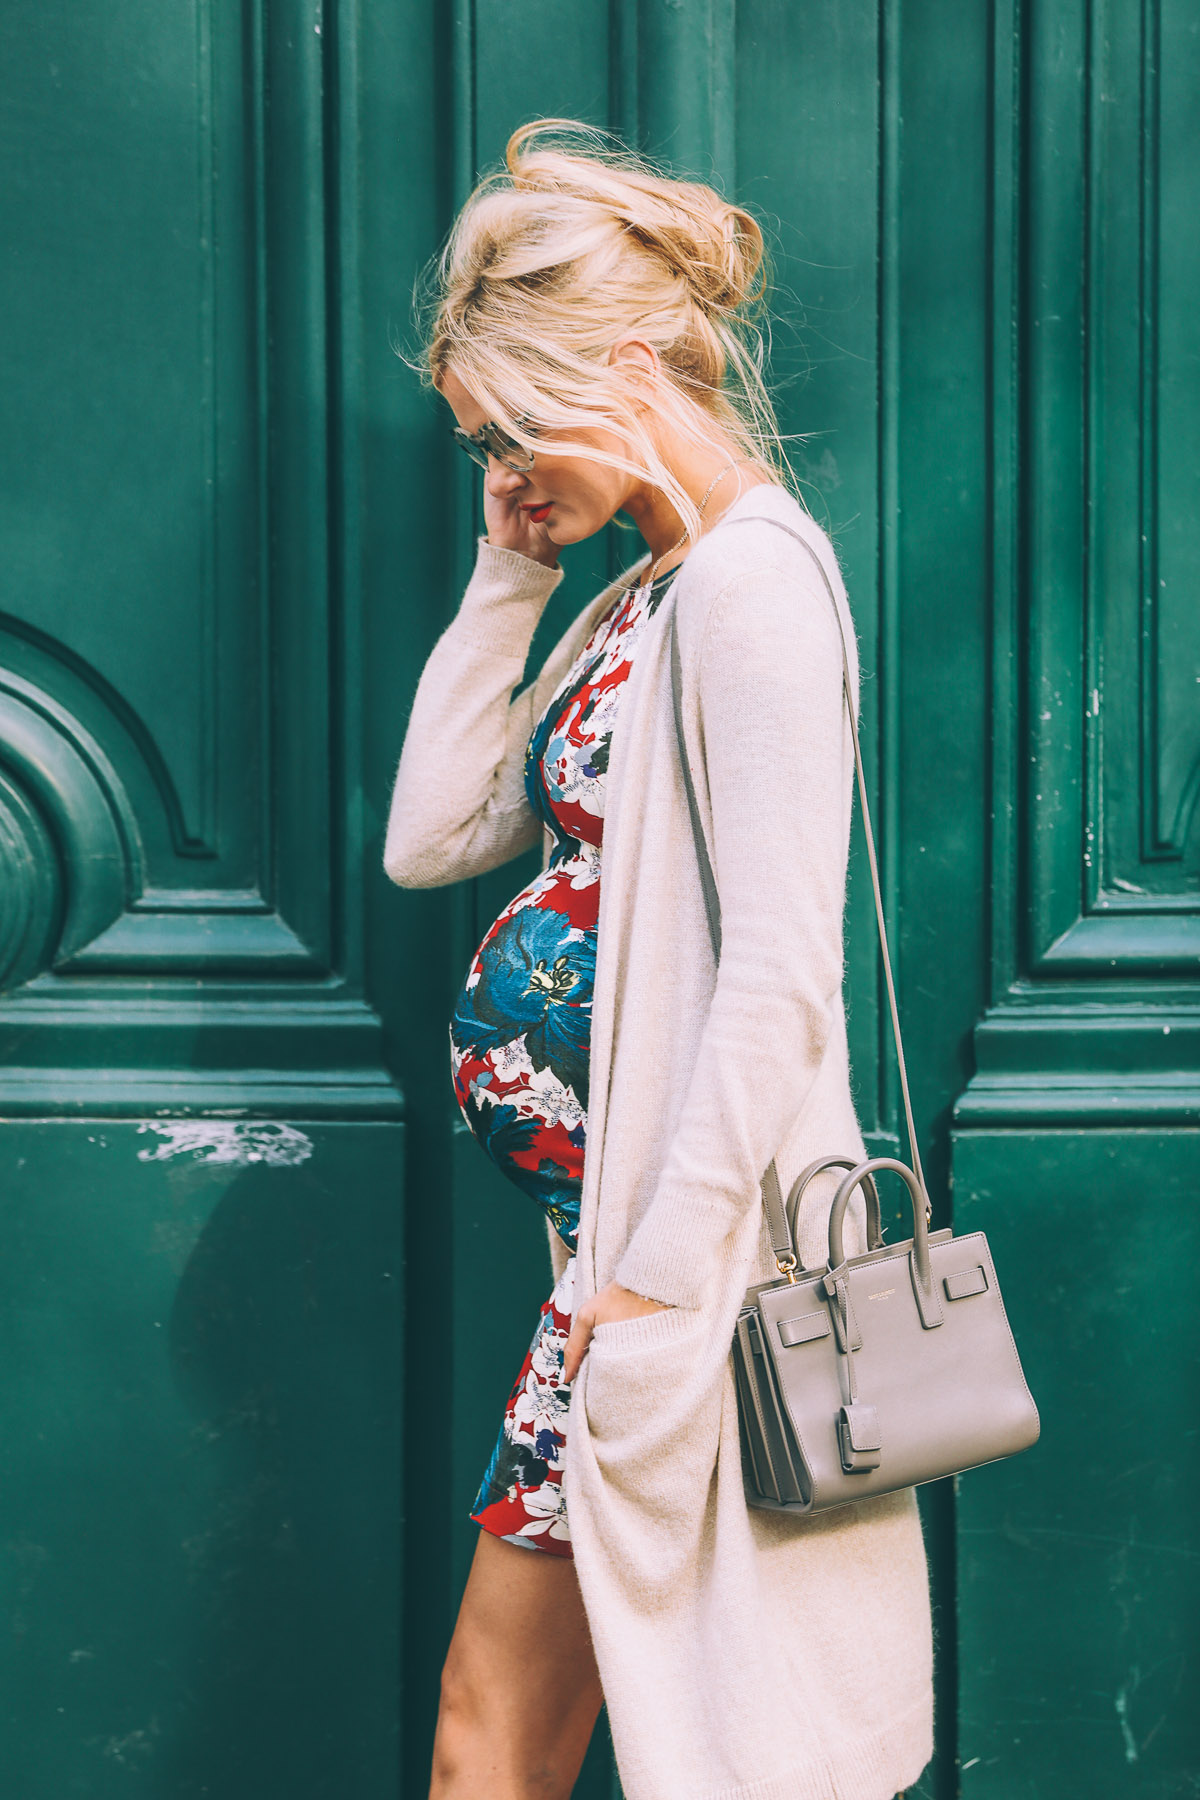 1000+ images about Maternity Clothes on Pinterest ...